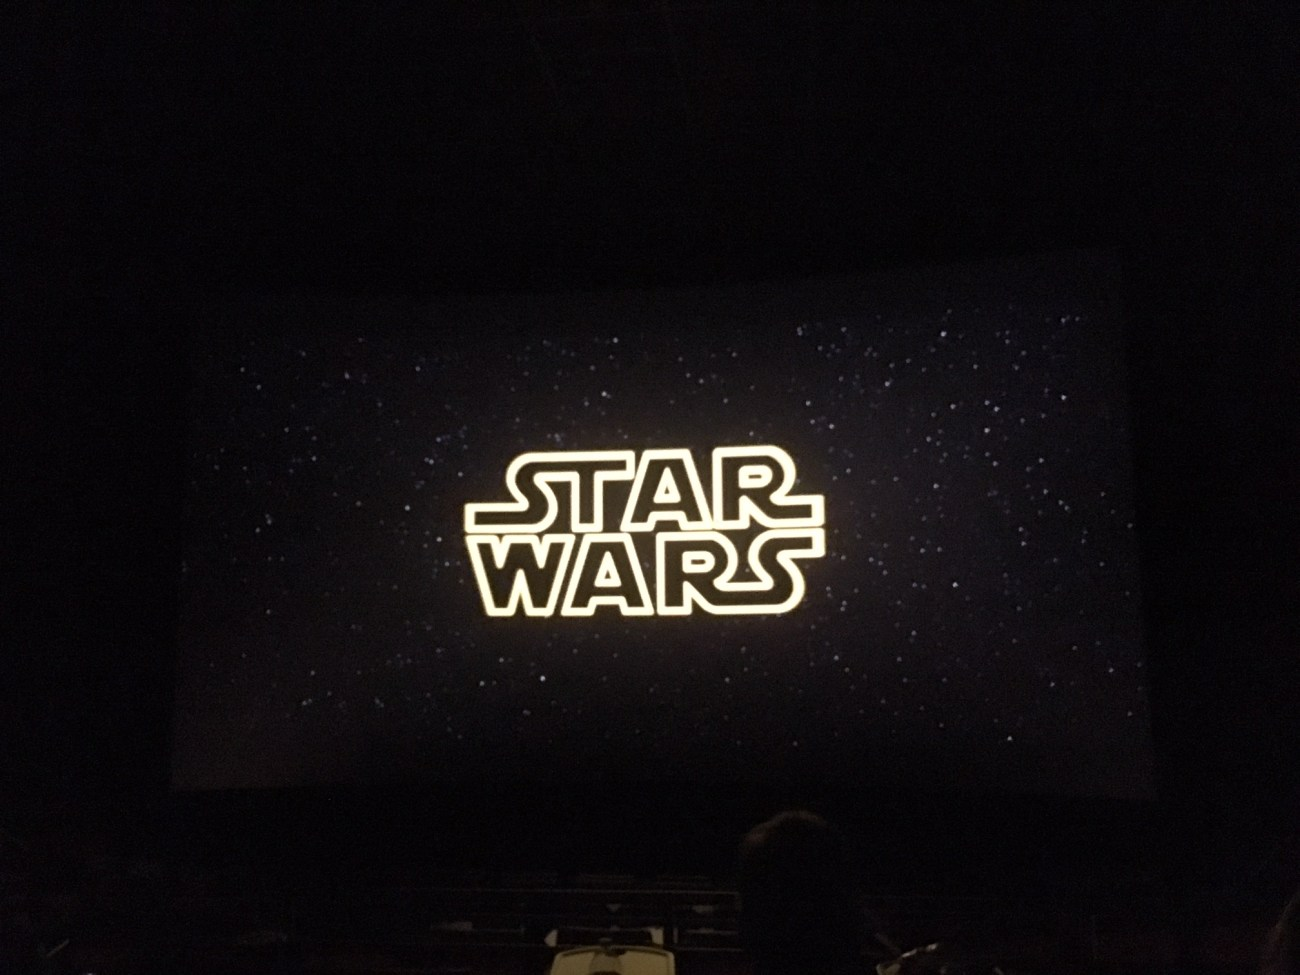 Nearly empty theater for Star Wars. Happy zombie apocalypse Saturday.